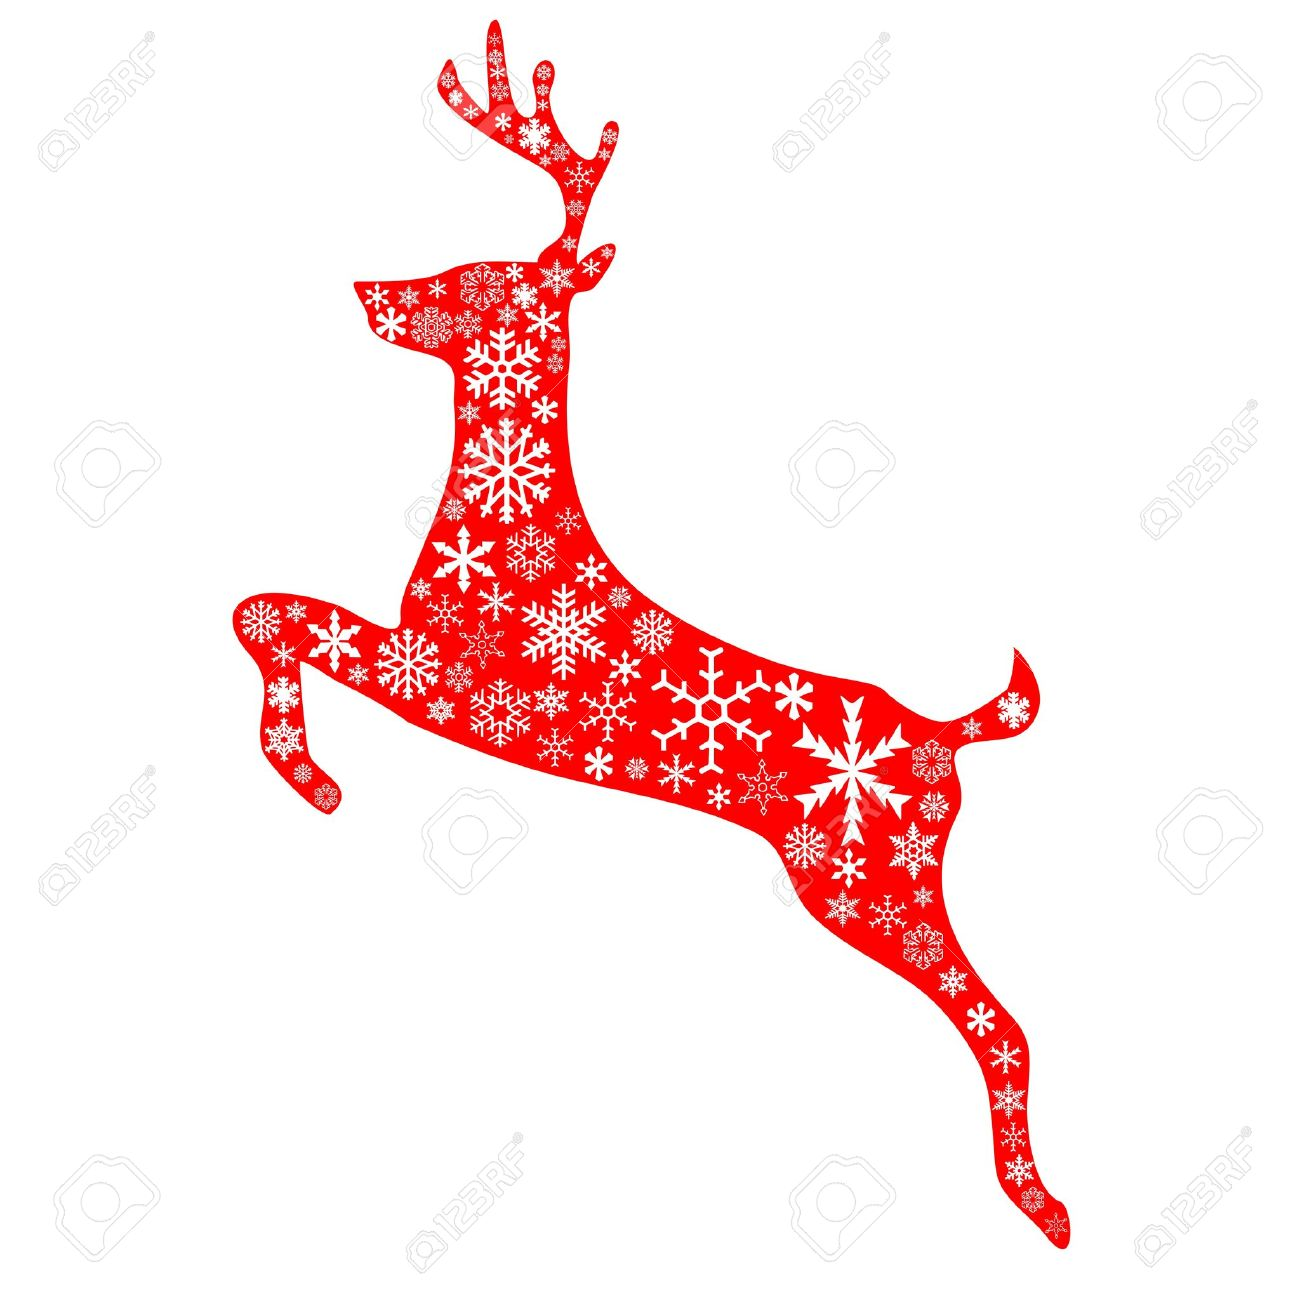 A jumping reindeer in christmas red background and white snowflakes pattern Stock Vector - 15886911